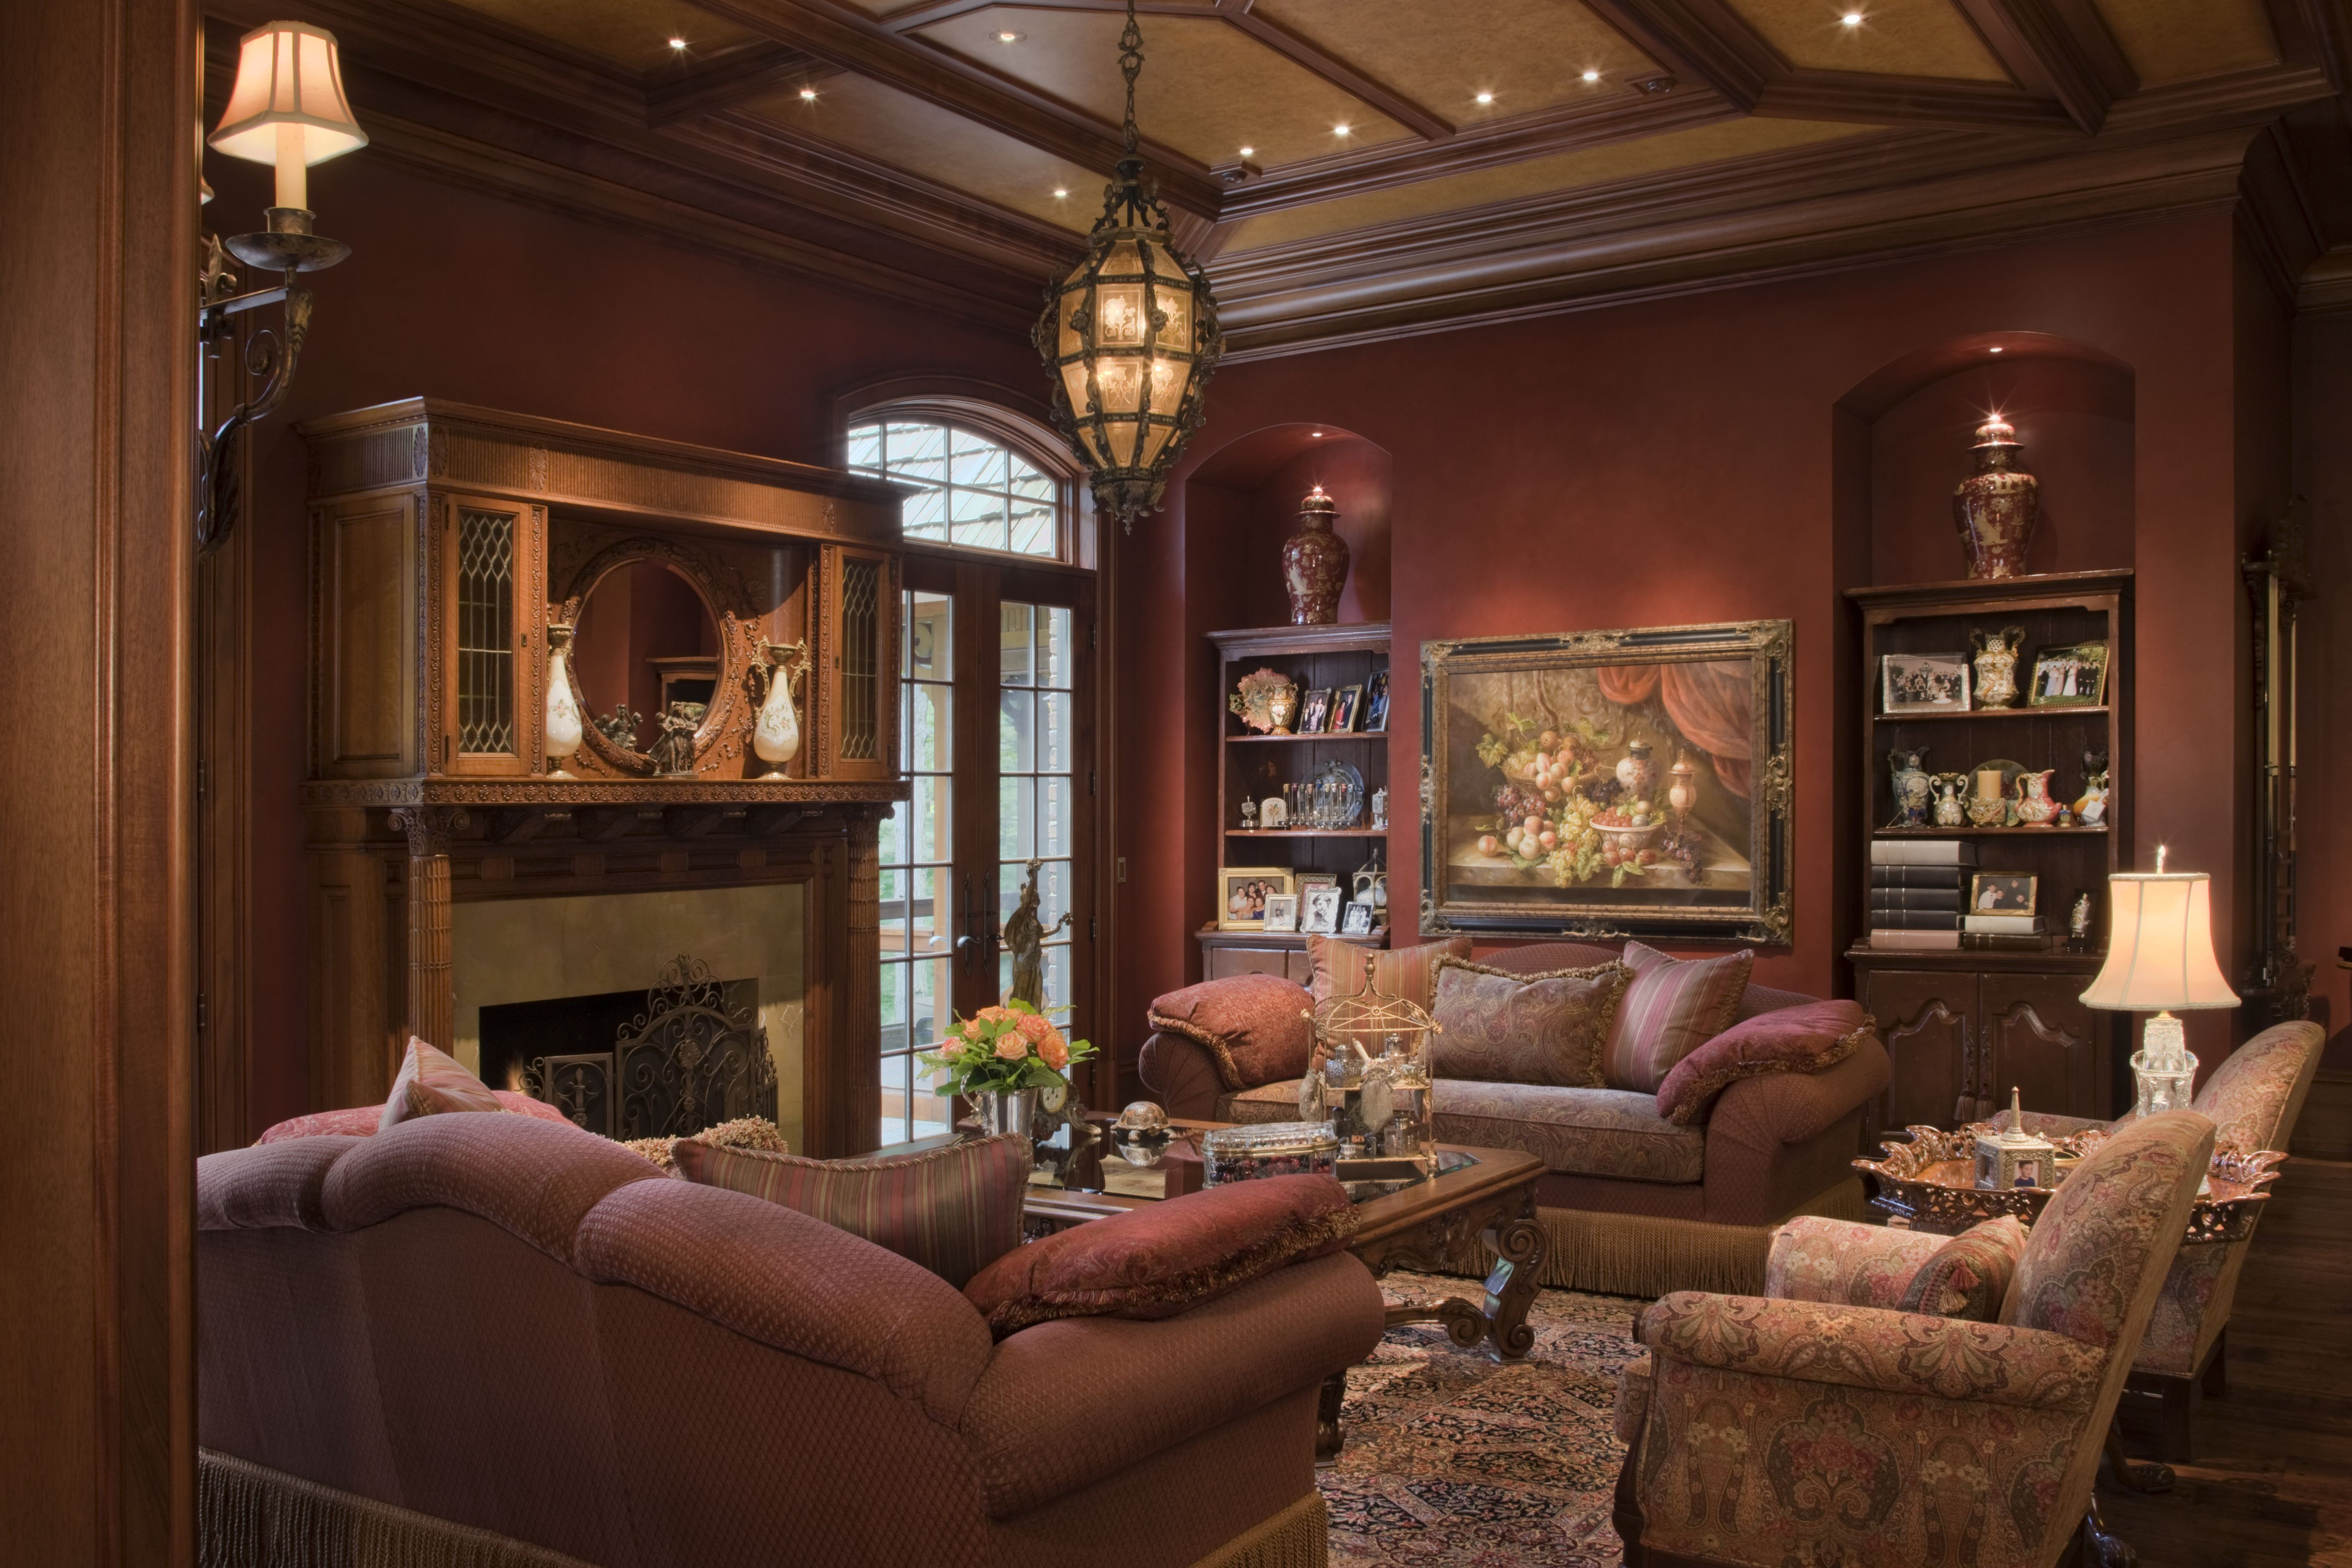 Bureau Authentic Style Work Of West Bloomfield Luxury Home Builder Wins 8 Design